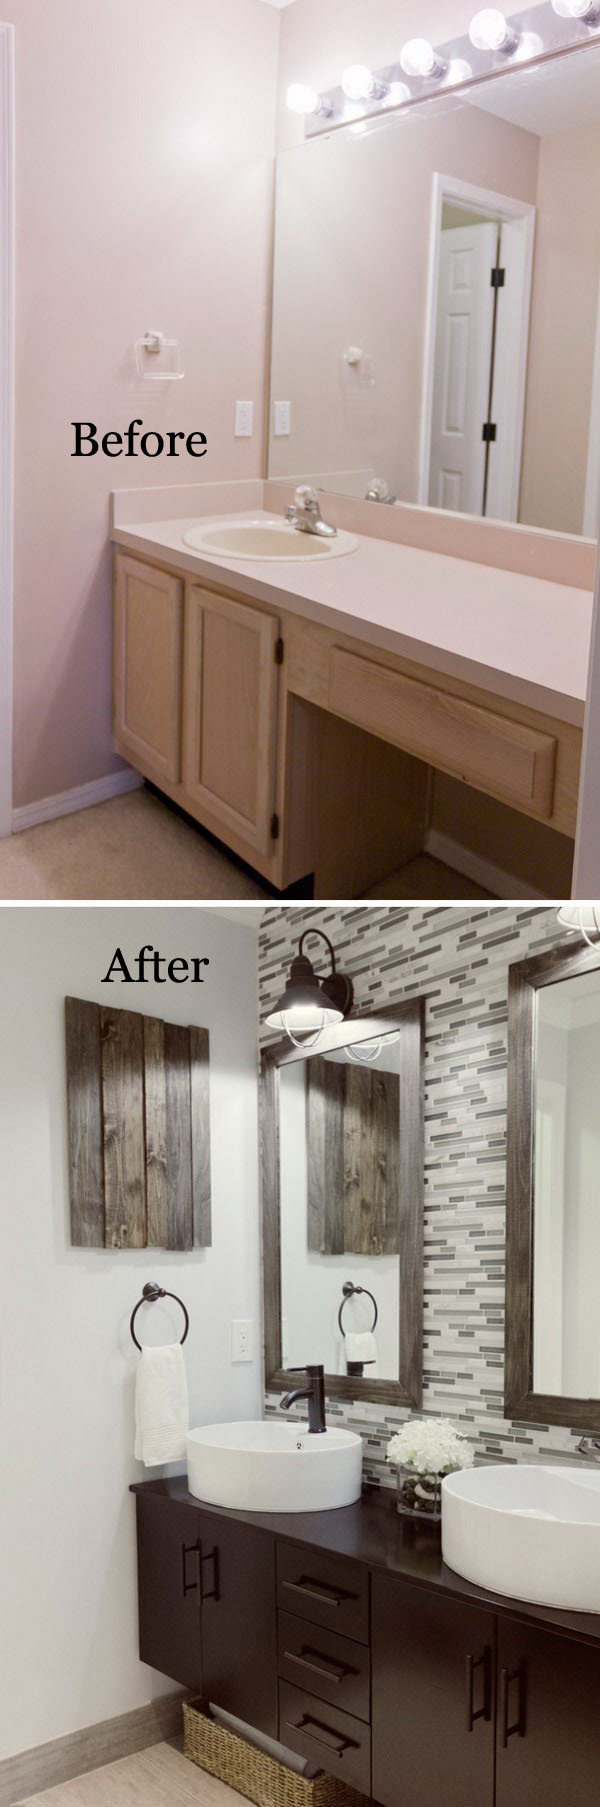 Before and after 20 awesome bathroom makeovers hative for Restroom renovations